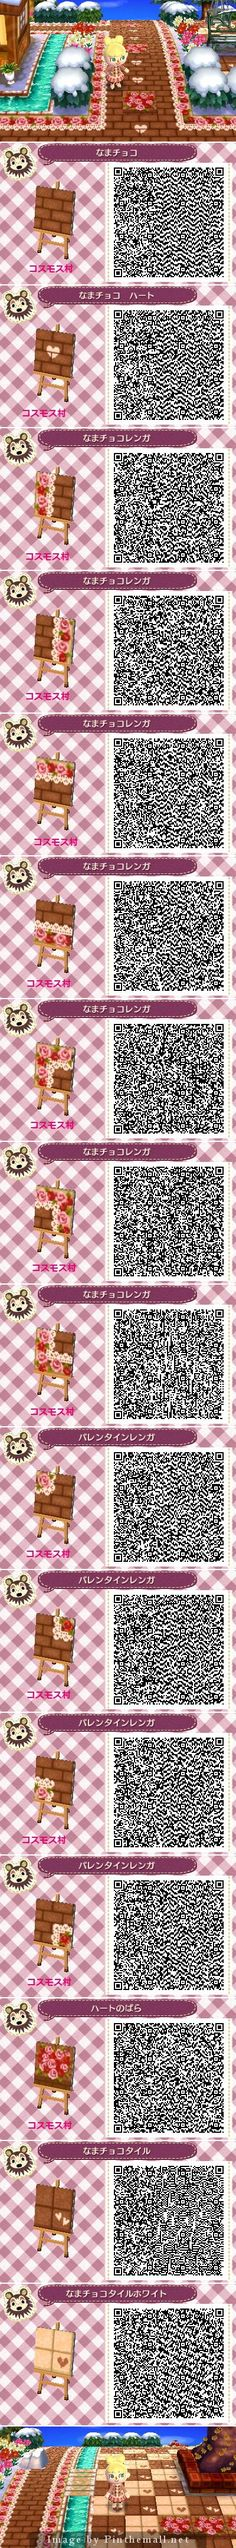 Chocolate rose bricked Path Animal Crossing New Leaf QR code